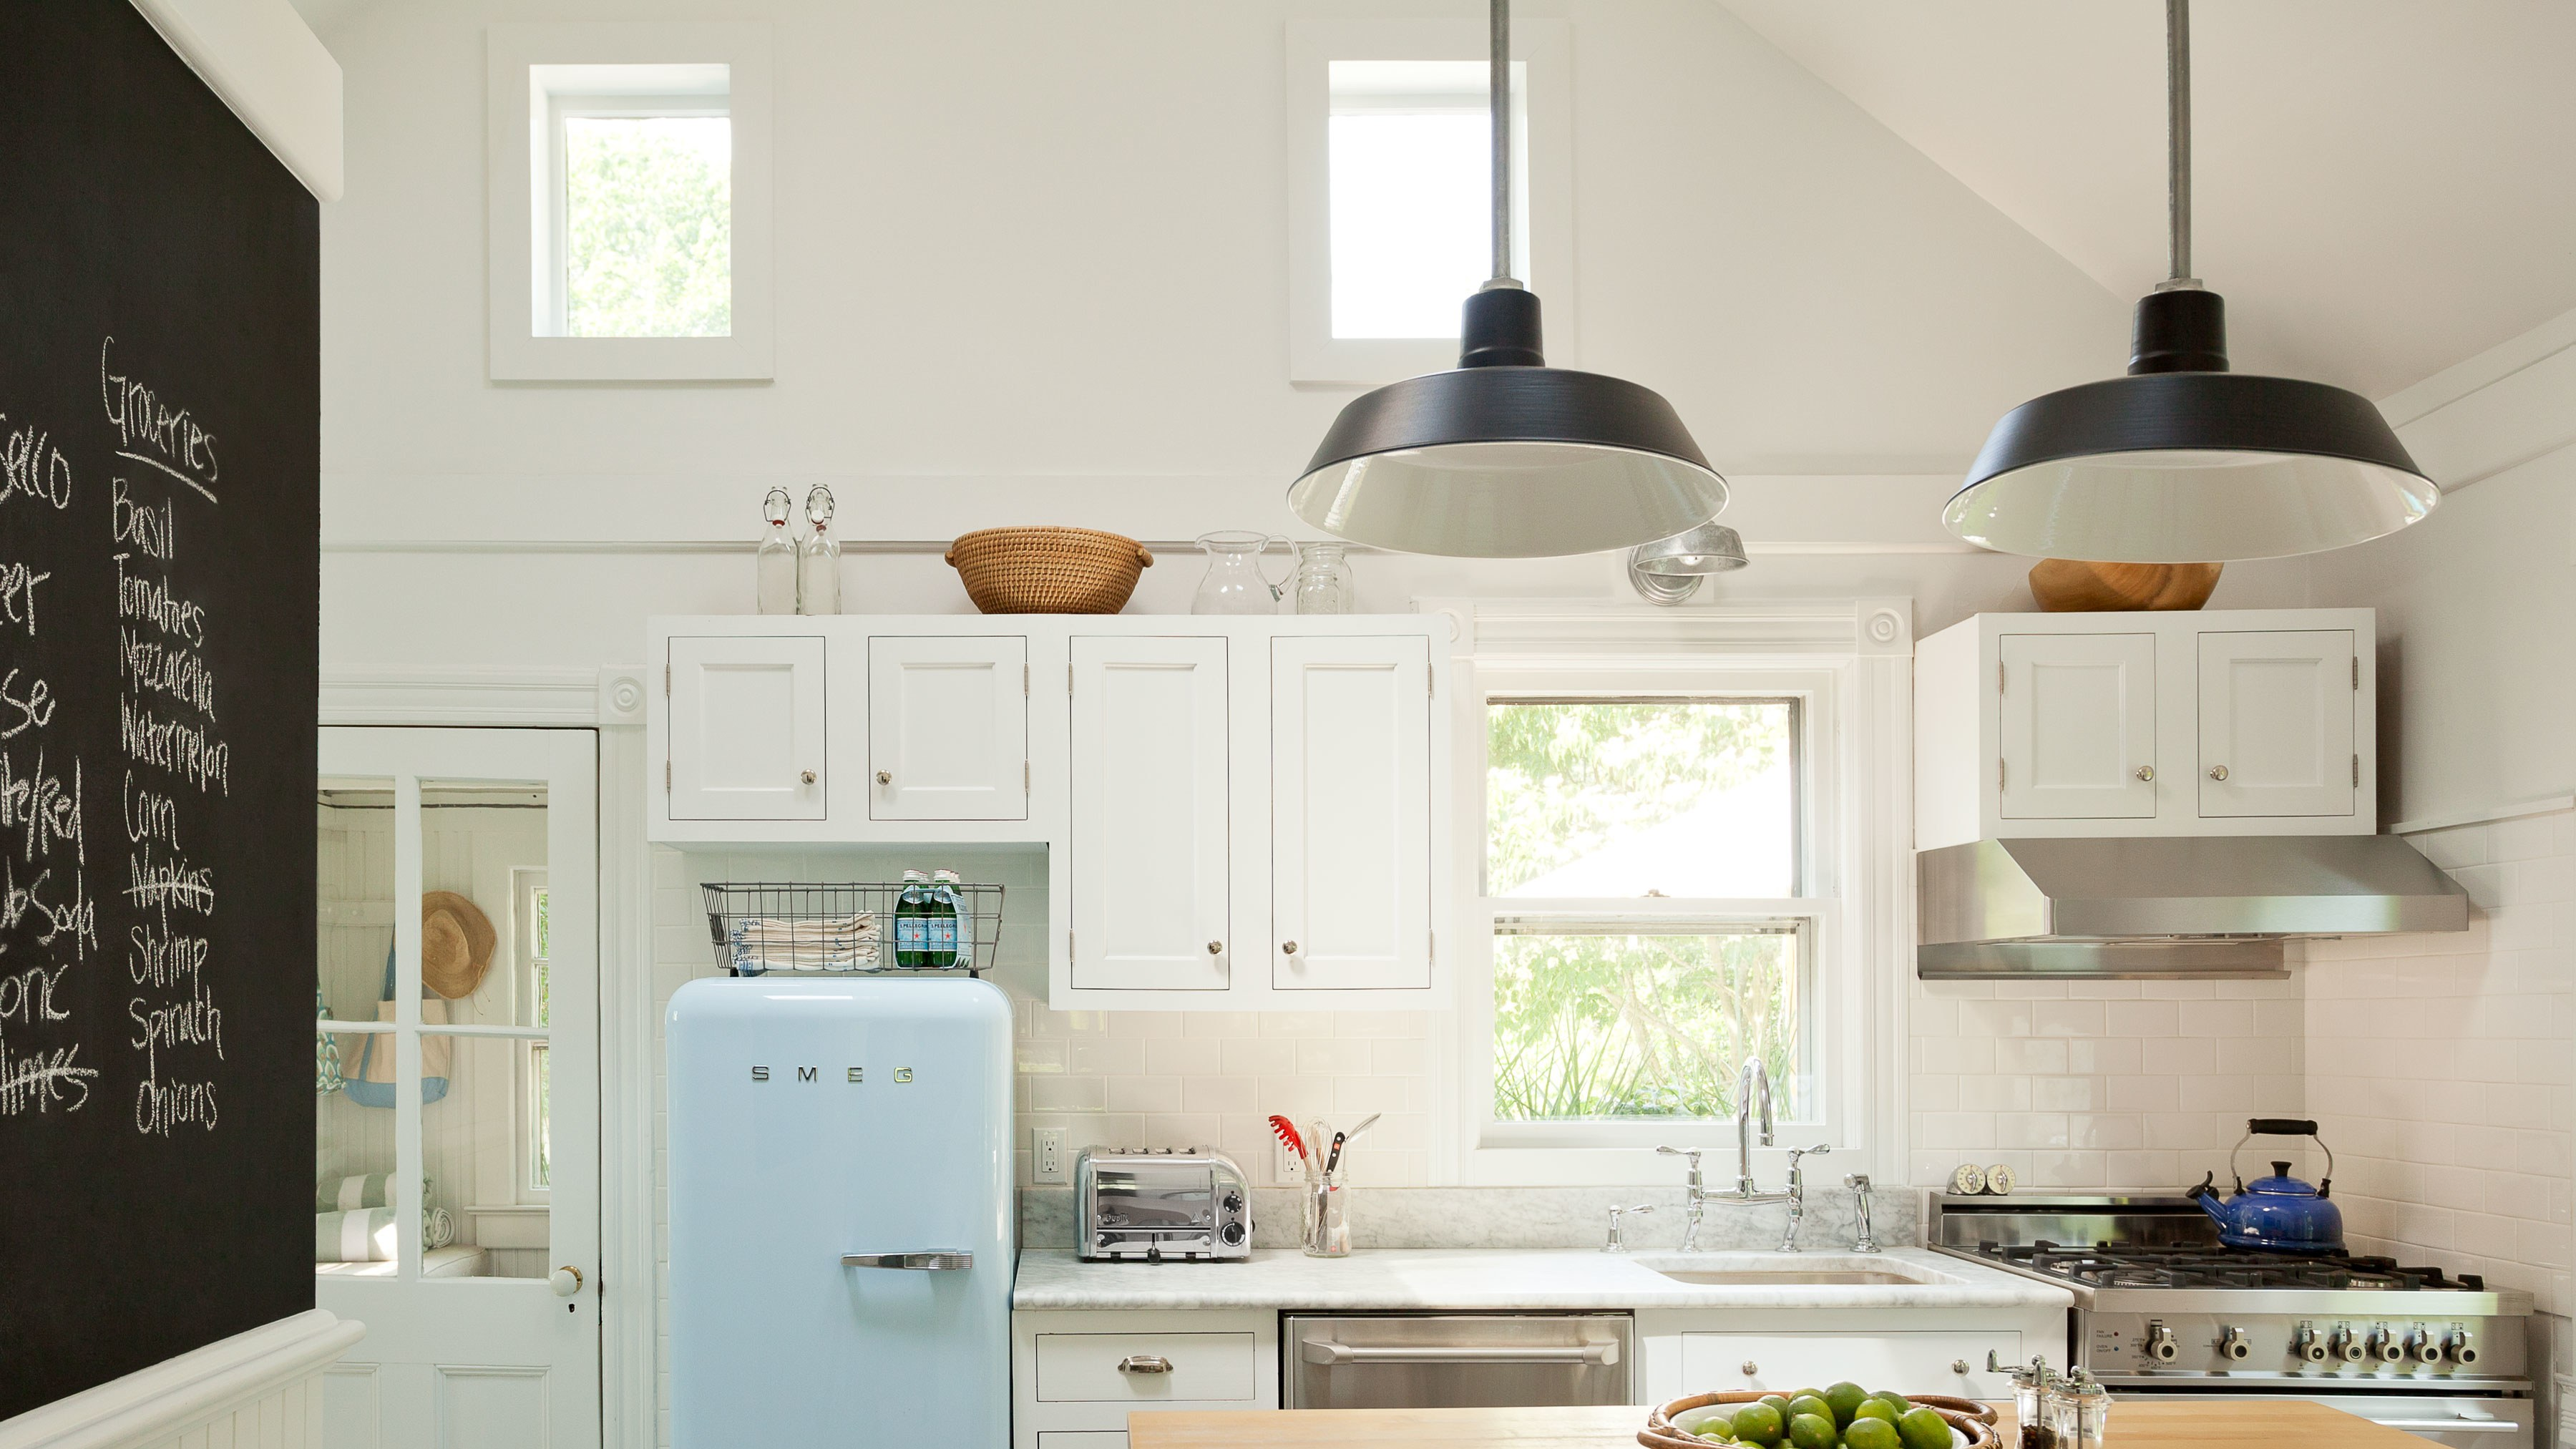 the best small kitchen design ideas for your tiny space smallkitchens jennywolf floating shelves architectural digest open upper cabinets concrete shelf shower corner tile perth